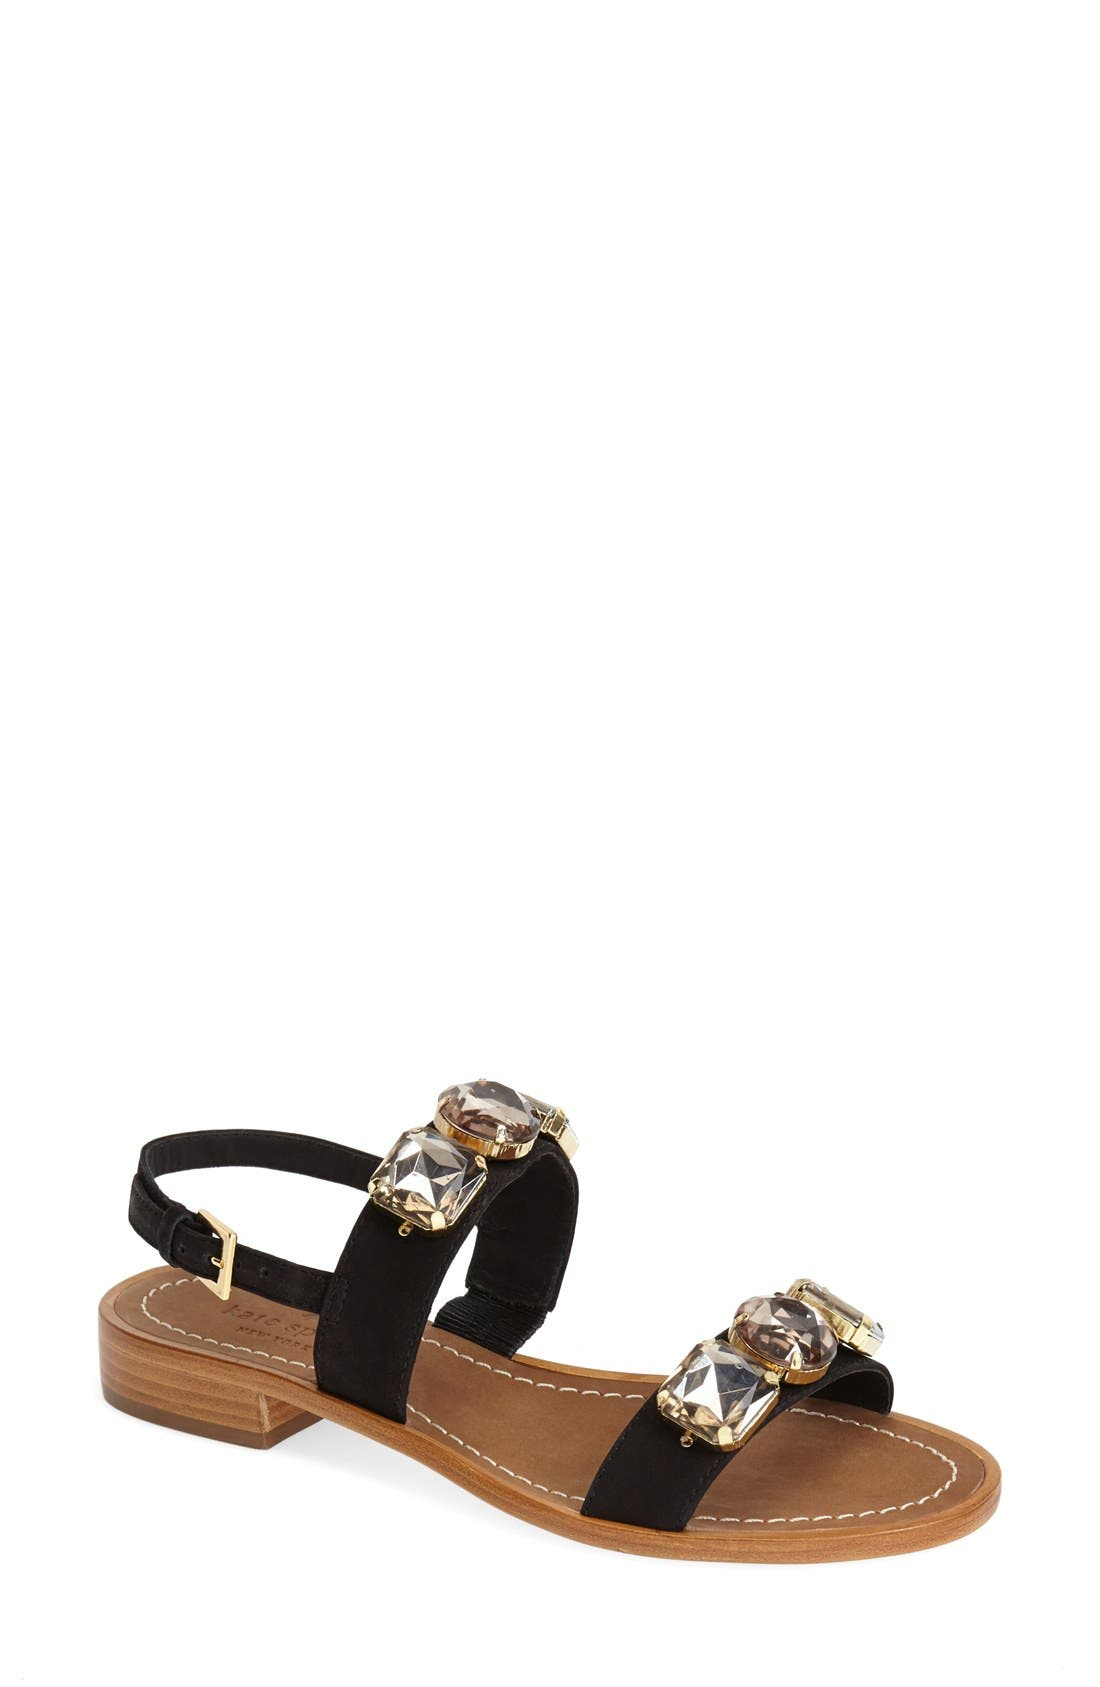 'bacau' ornate double band sandal,                             Main thumbnail 1, color,                             001